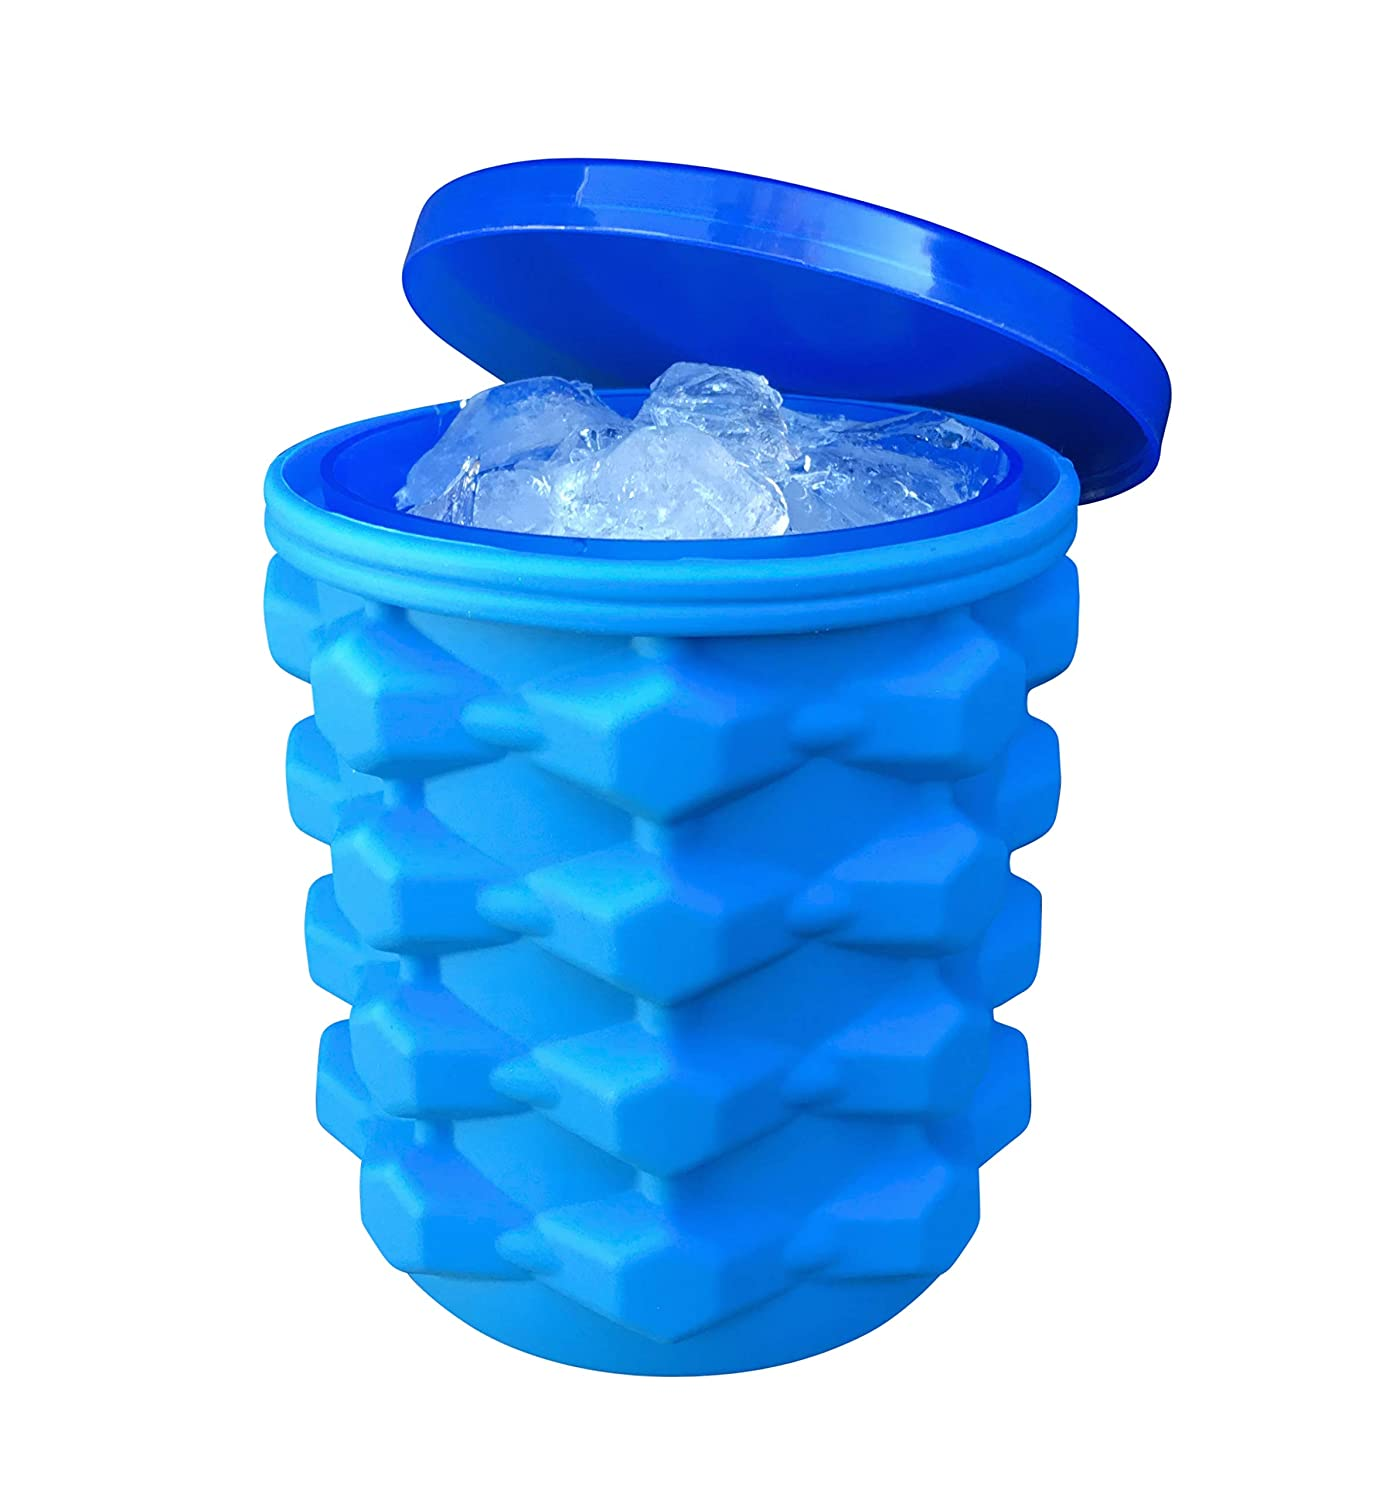 The Ultimate Ice Cube Maker Silicone Bucket with Lid Makes Nugget Ice Chips for Soft Drinks, Crushed Ice Tray Mold, Wine Chilling Bucket Magic Ice Maker Bucket Ice Chamber Ice Cube Cylinder